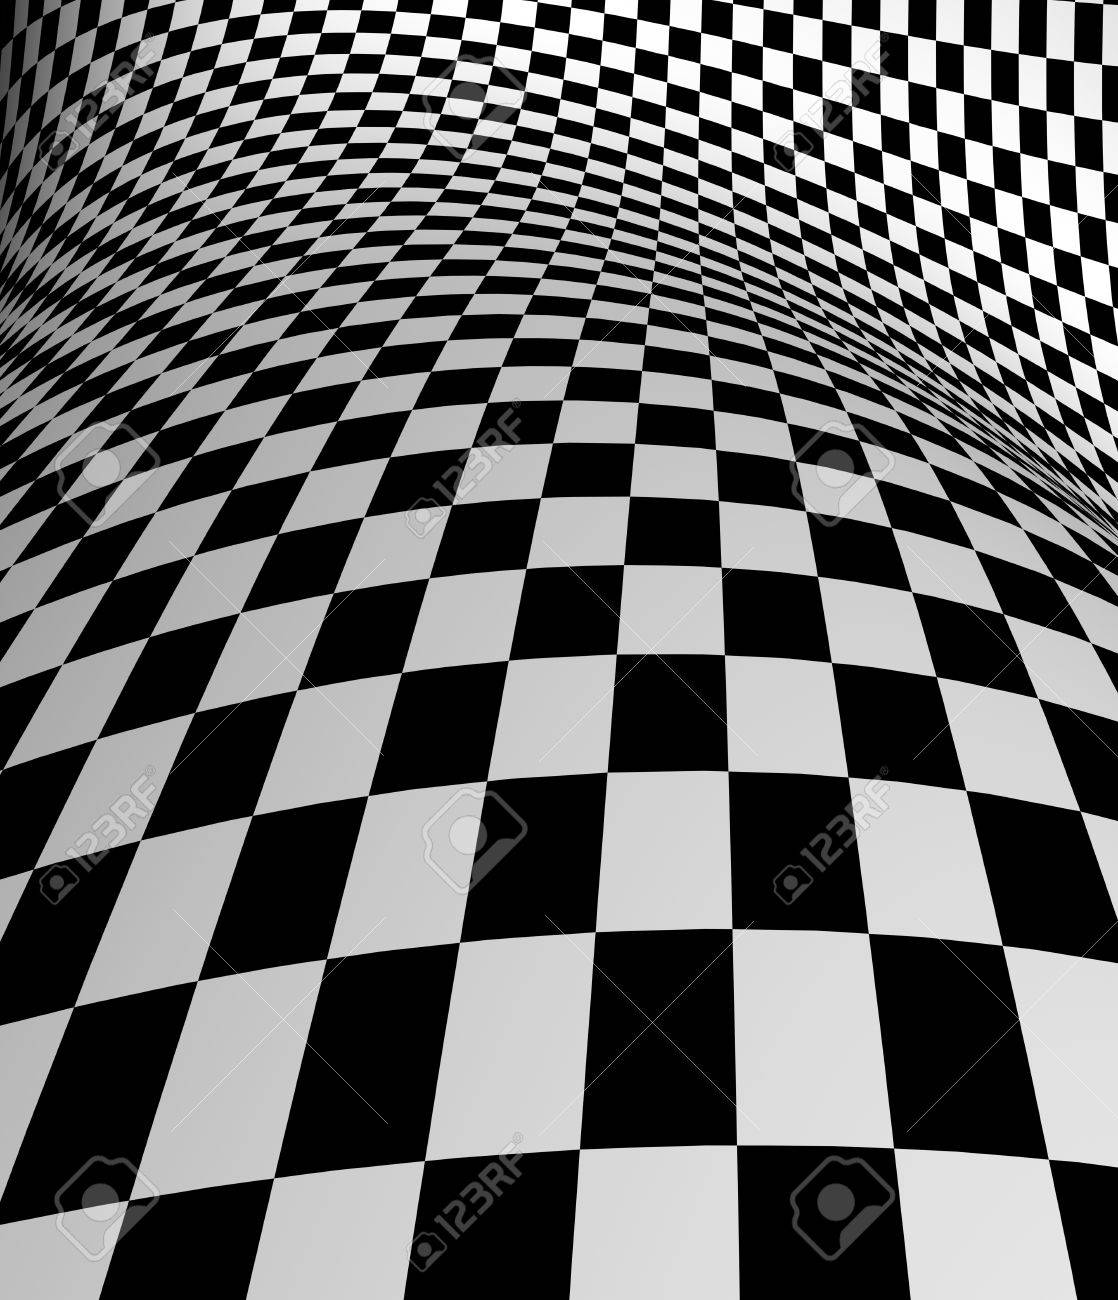 Black White Checkered Plane Stock Photo Picture And Royalty Free